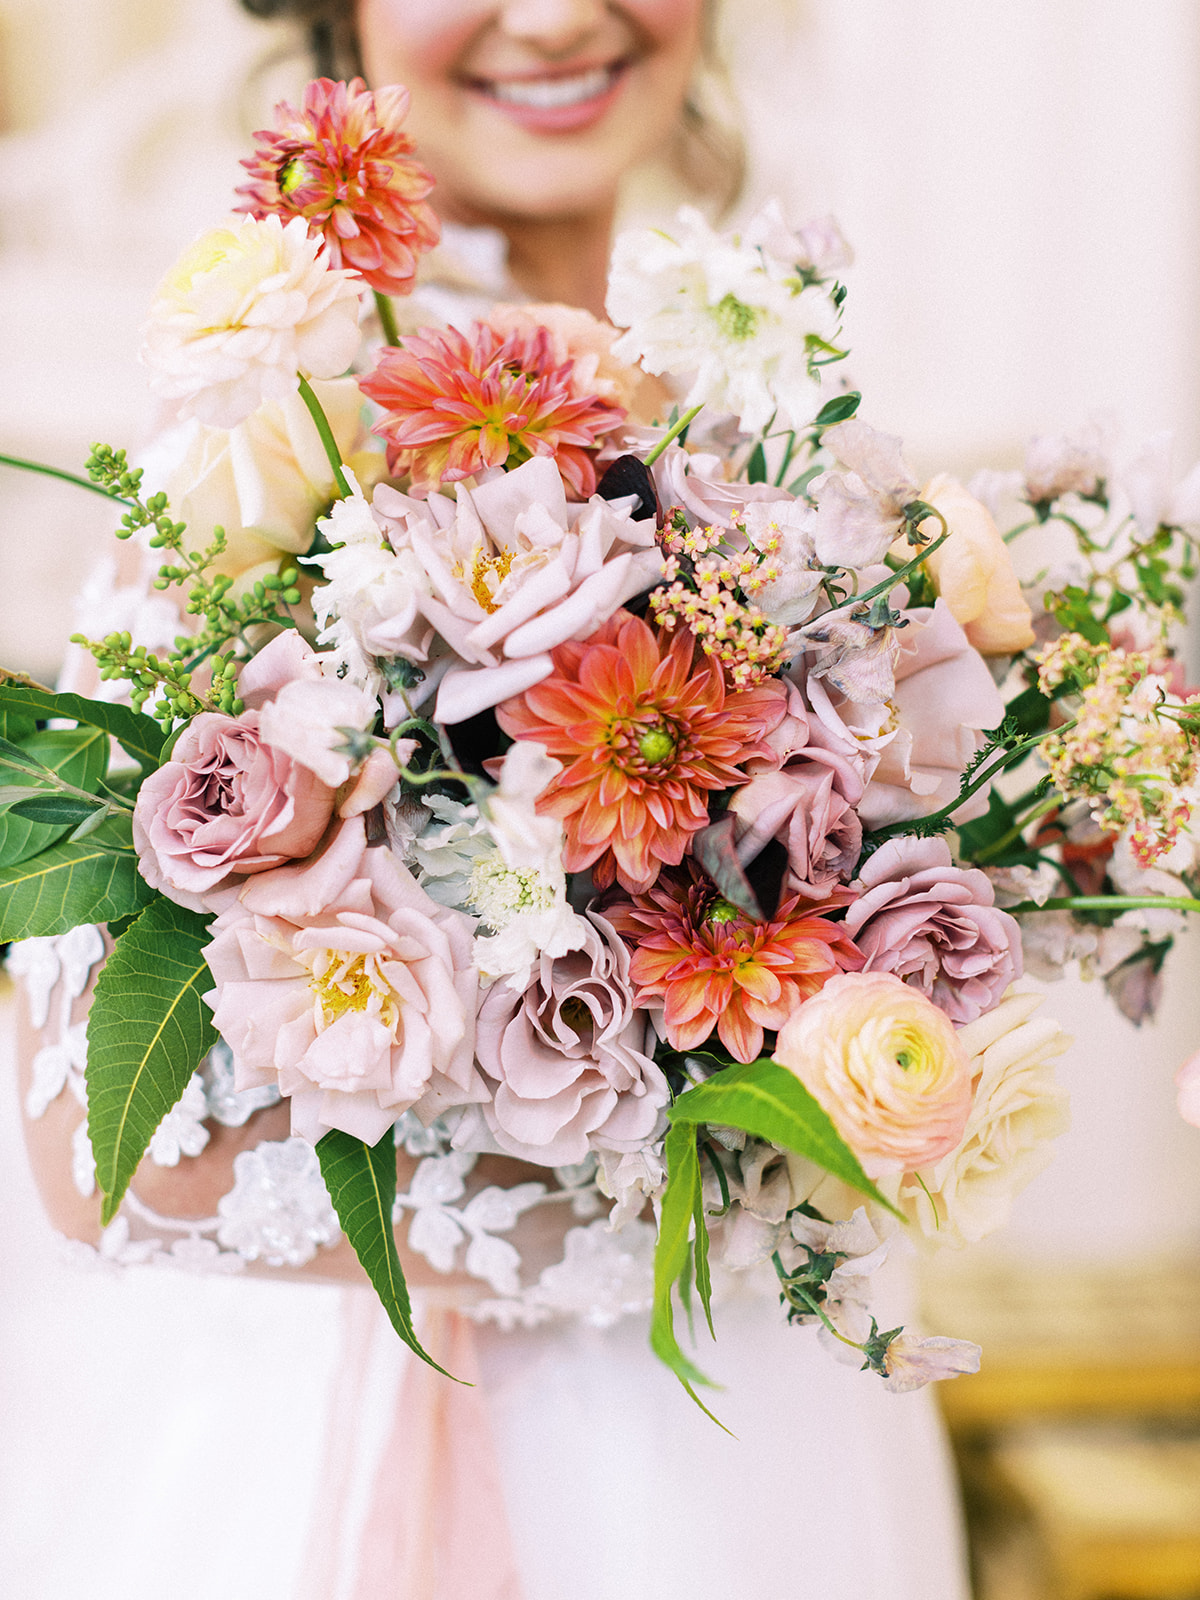 Bridal bouquet: Whimsical garden elegance styled shoot featured on Alexa Kay Events